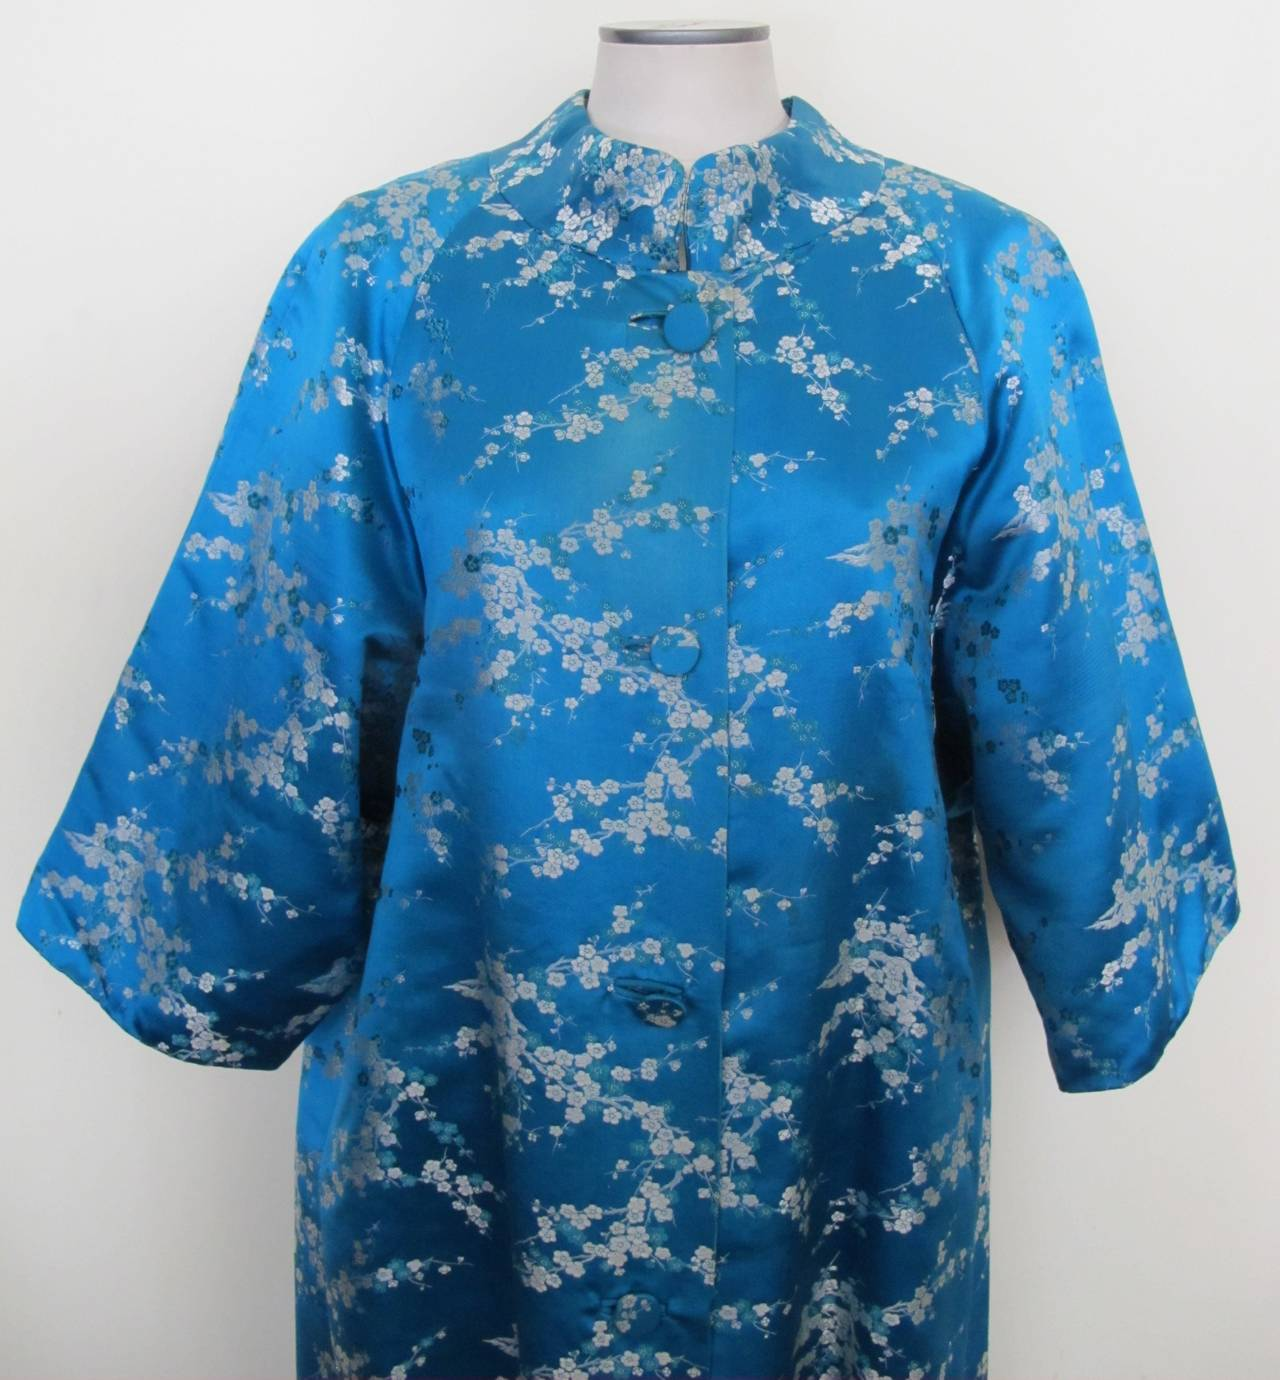 1945 Family Japanese Heirloom Turquoise Blue Robe 4